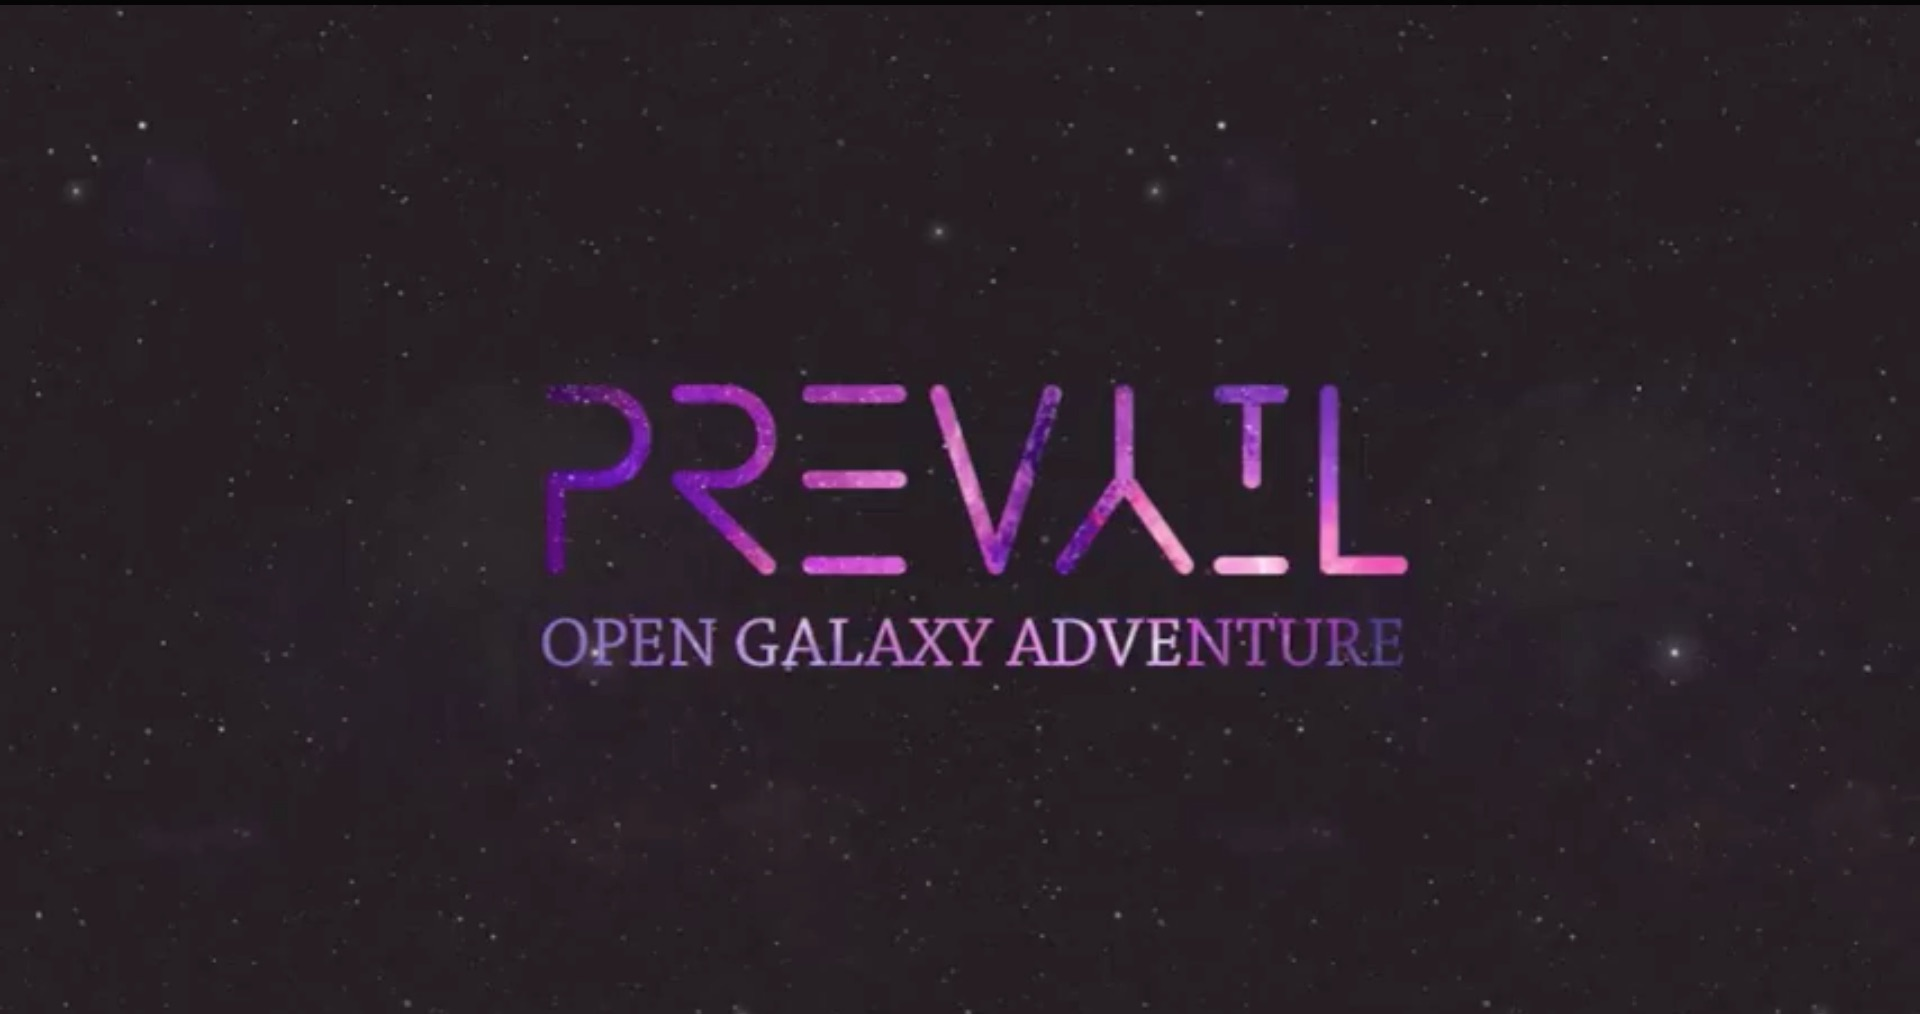 Ambitious space exploration game Prevail to land in 2015